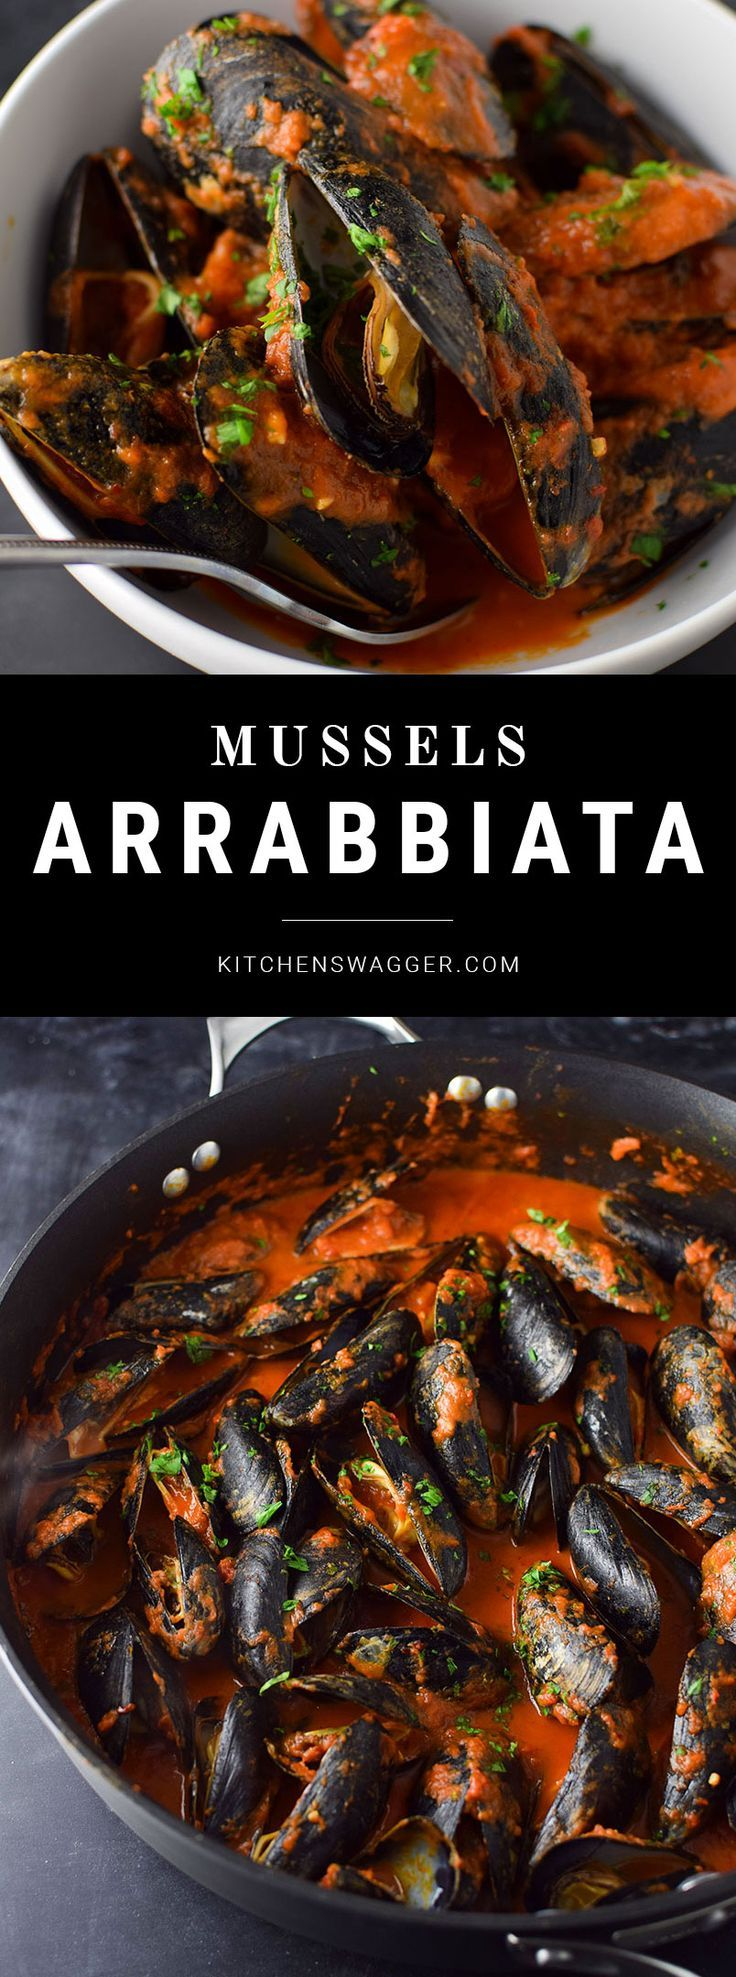 Simple mussels recipe in spicy red sauce.